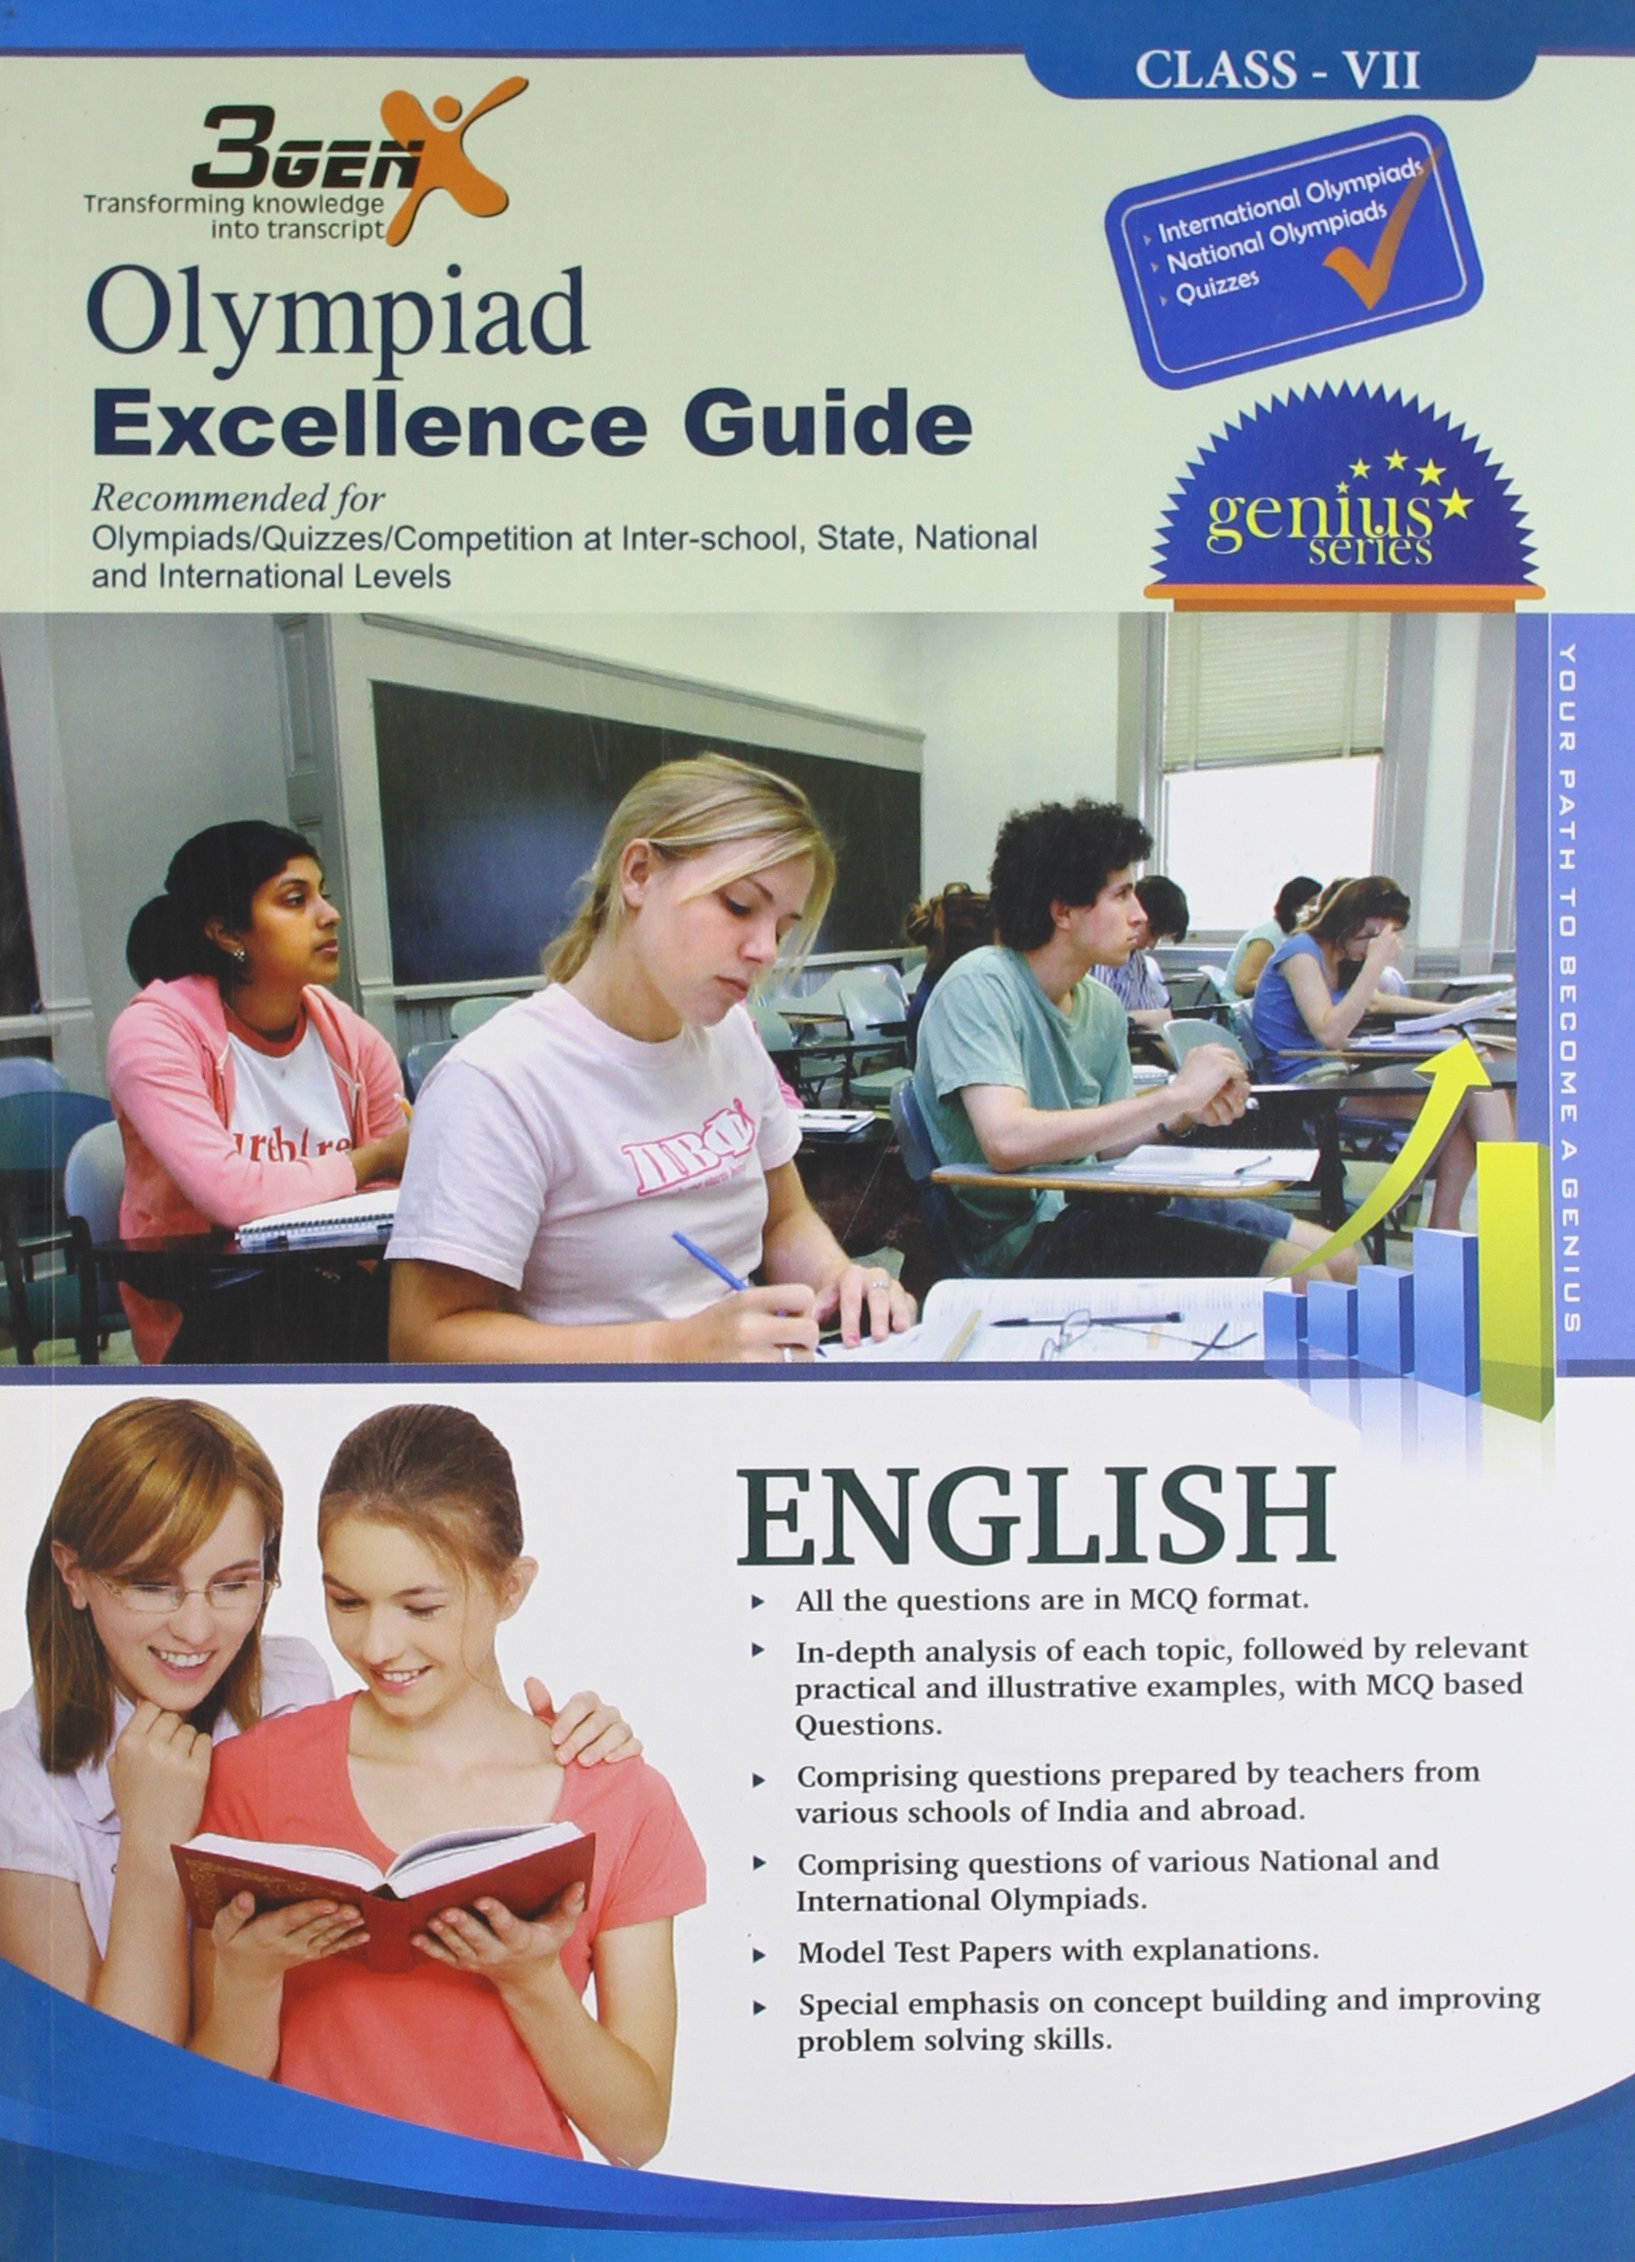 Buy Olympied Excellence Guide for English Class 7 Book Online at Low Prices  in India | Olympied Excellence Guide for English Class 7 Reviews & Ratings  ...